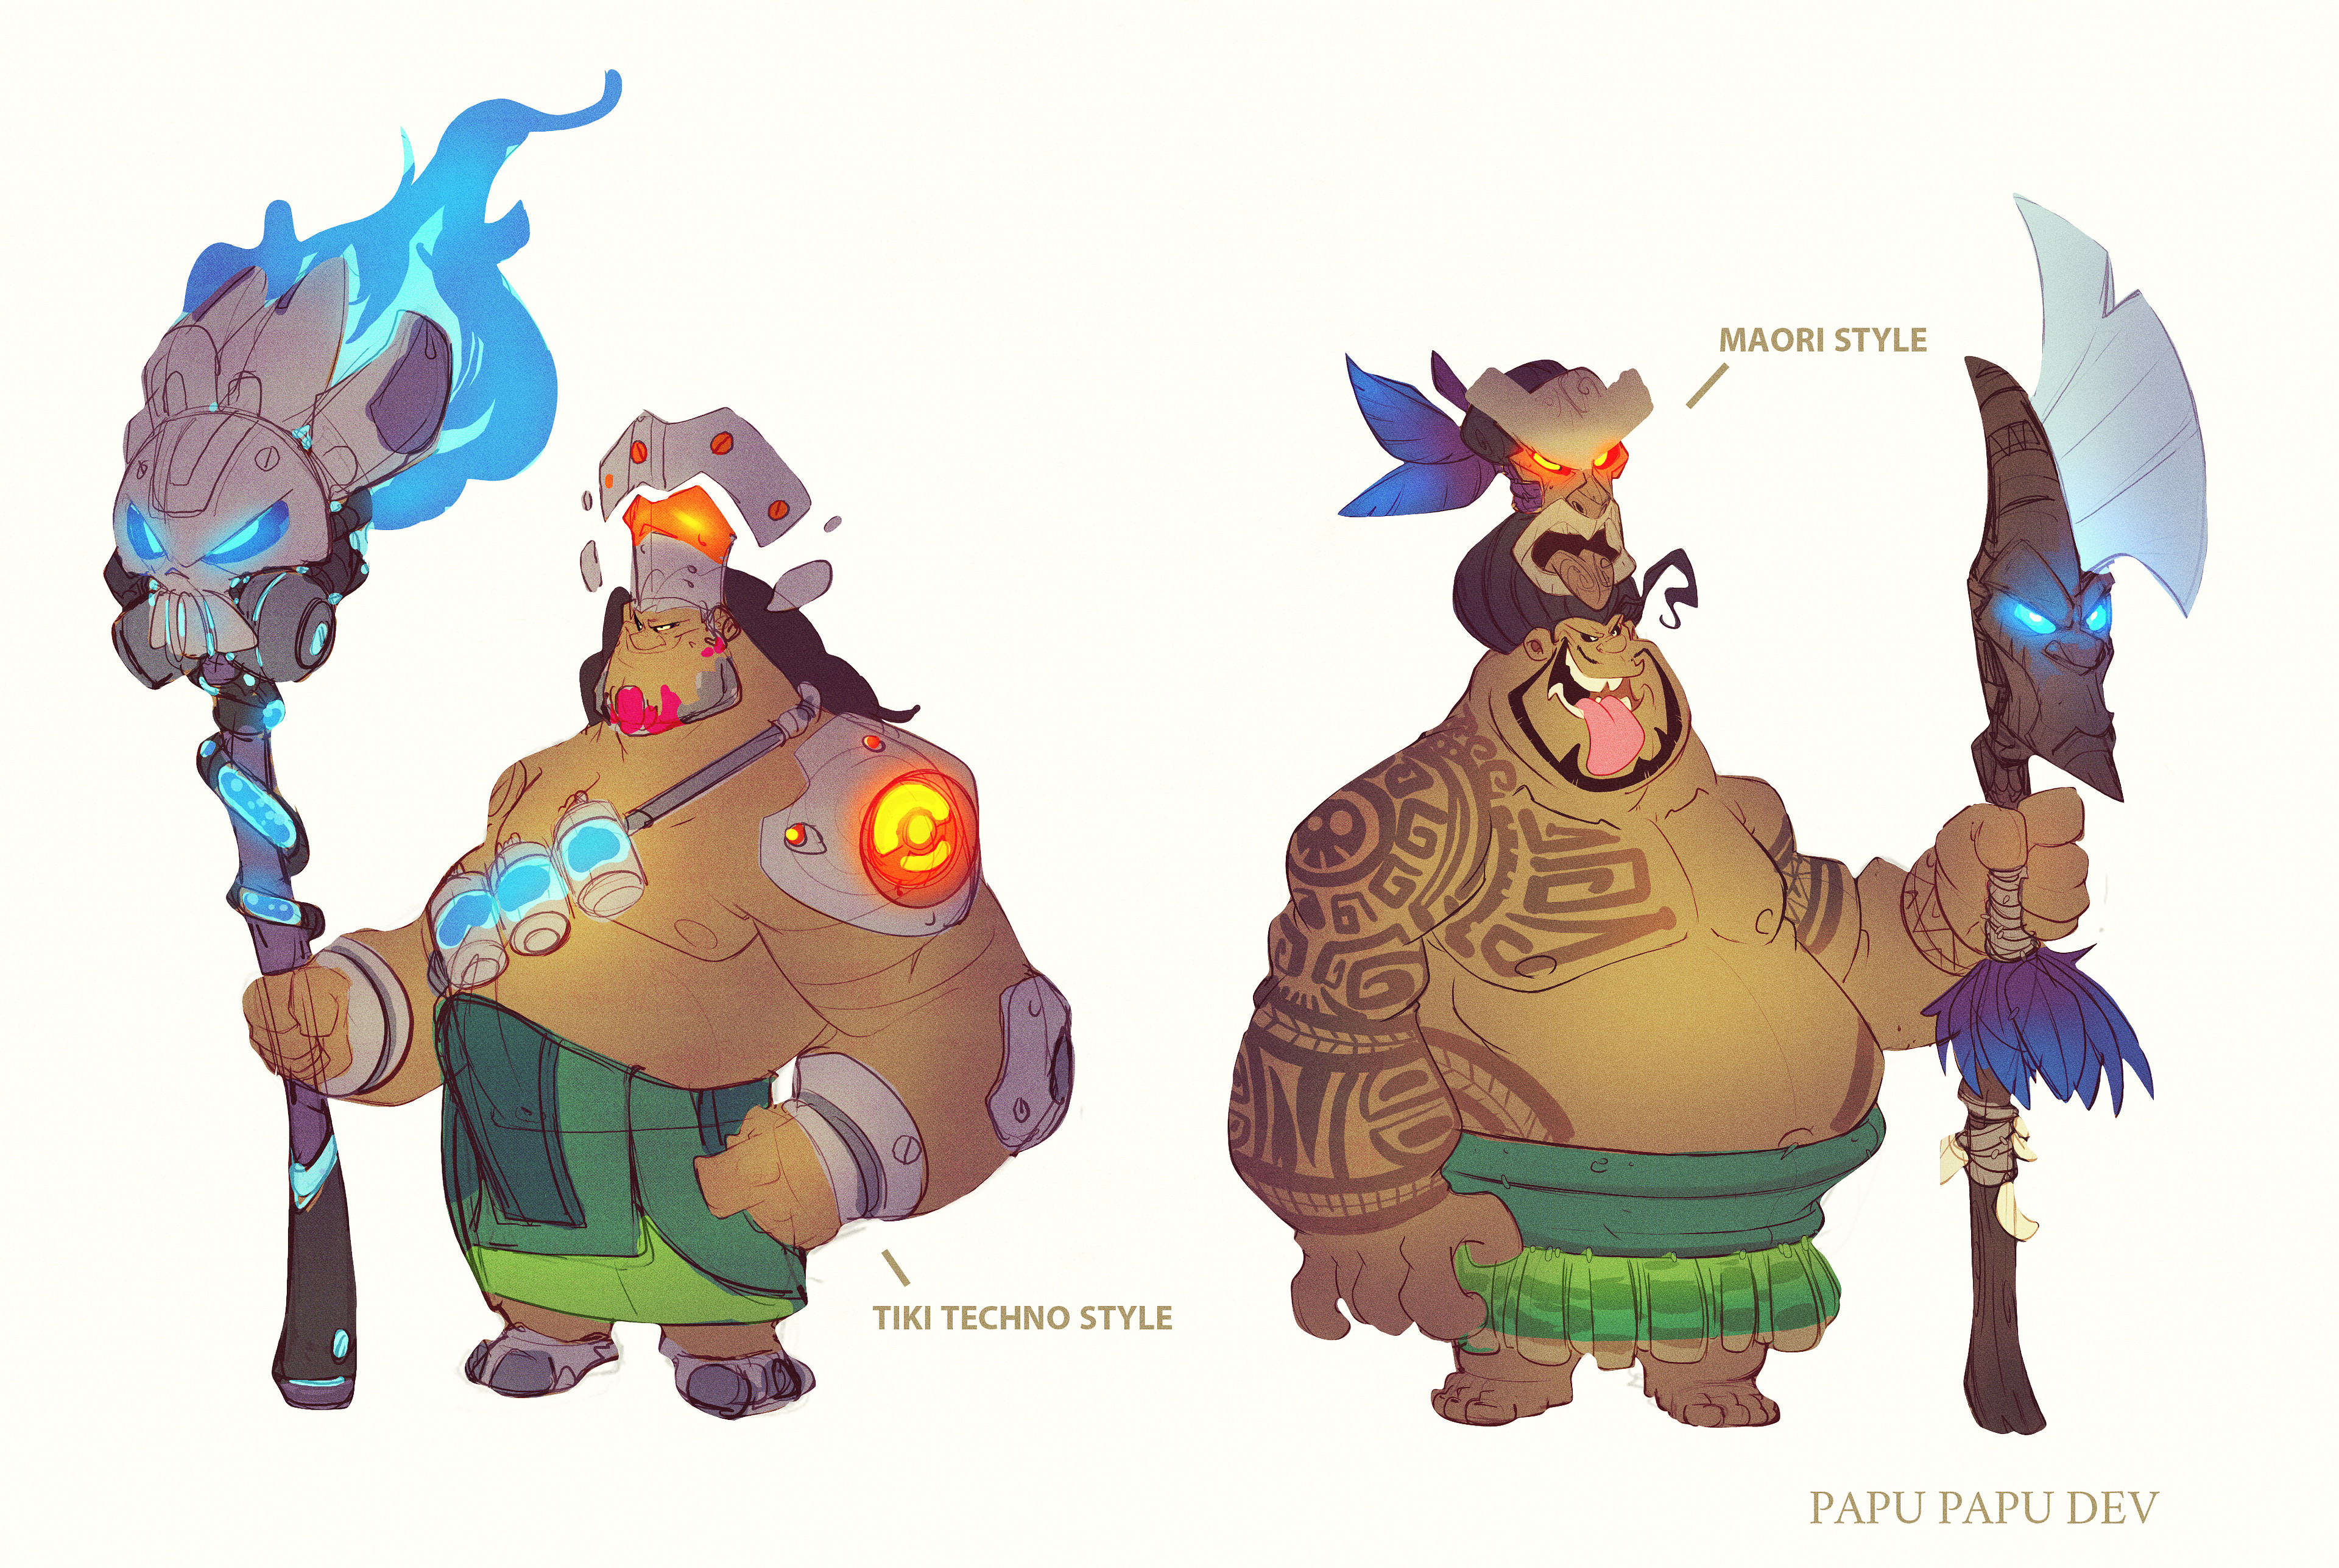 Early Crash 4 concept development: Papu Papu ideations.